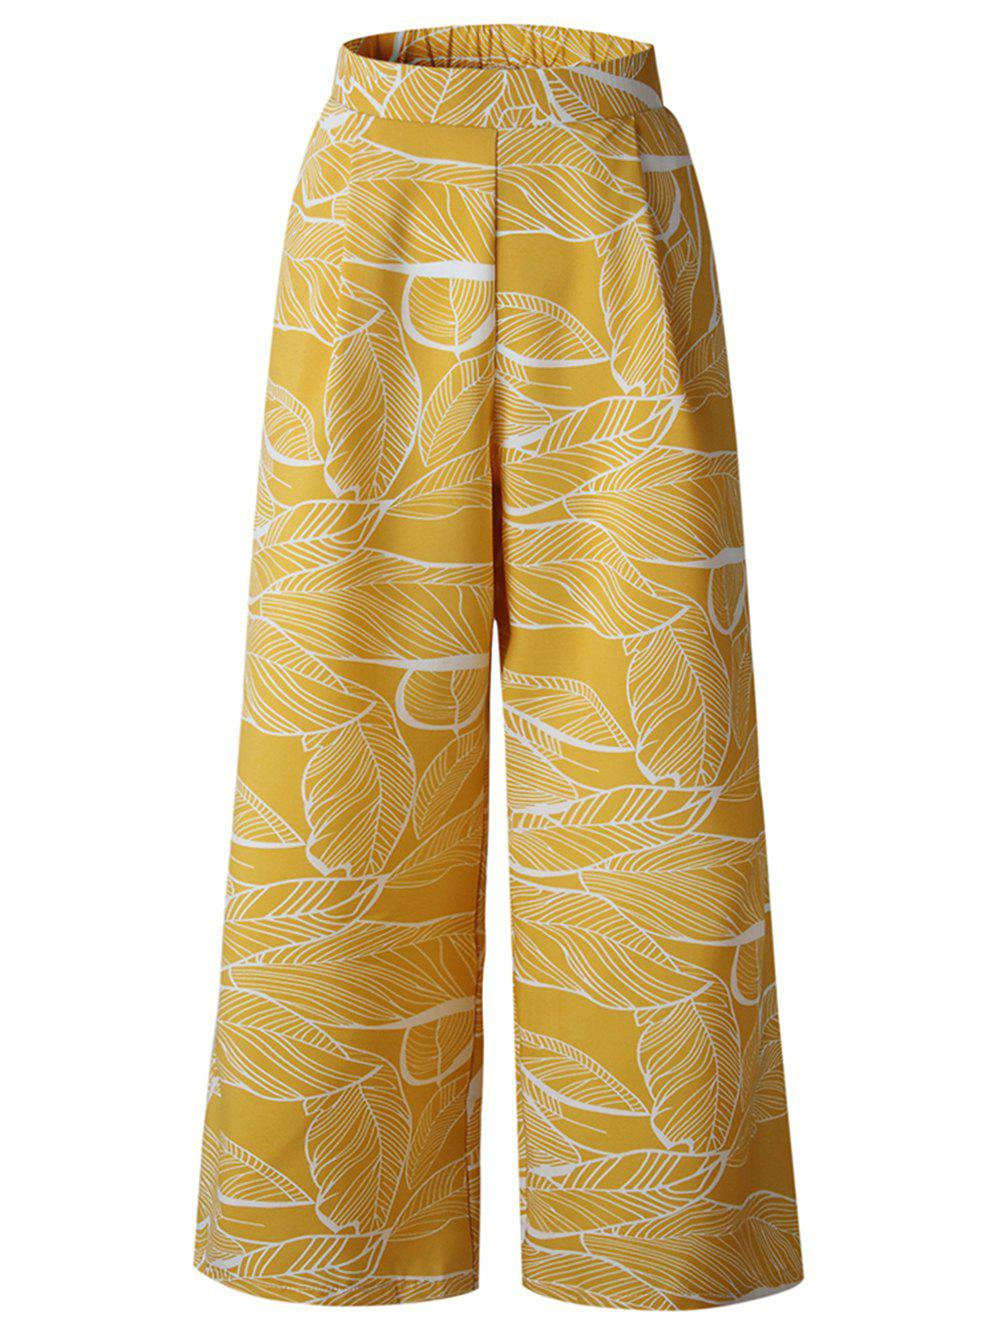 Shops Womens Casual Floral Print High Waist Wide Leg Long Palazzo Pants with Pockets